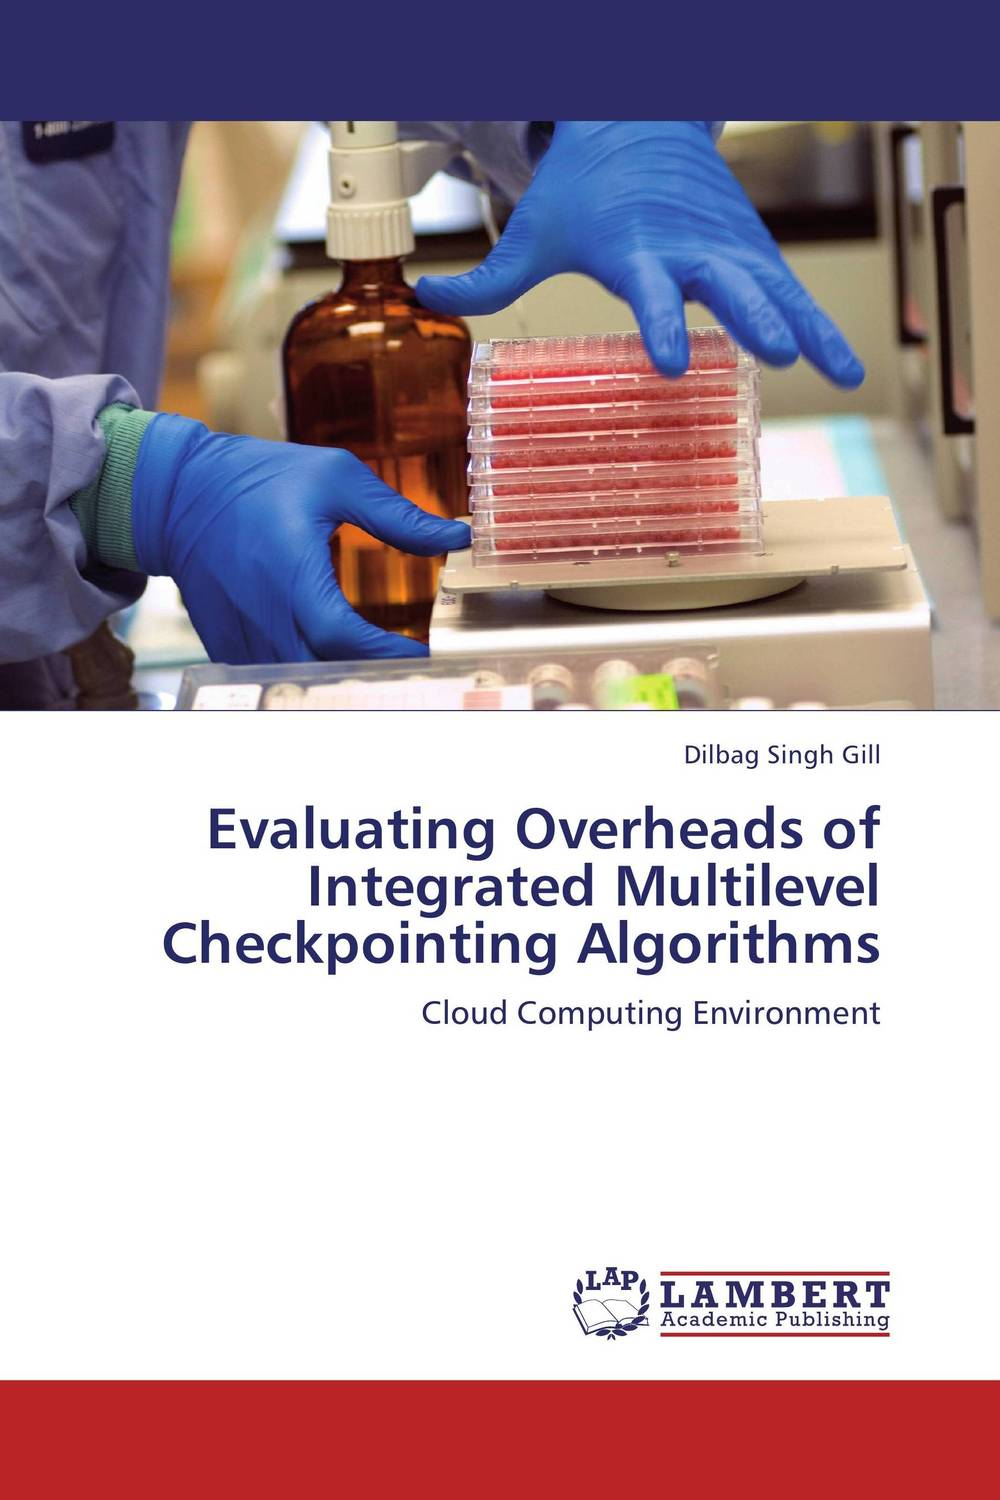 Evaluating Overheads of Integrated Multilevel Checkpointing Algorithms dilbag singh gill evaluating overheads of integrated multilevel checkpointing algorithms